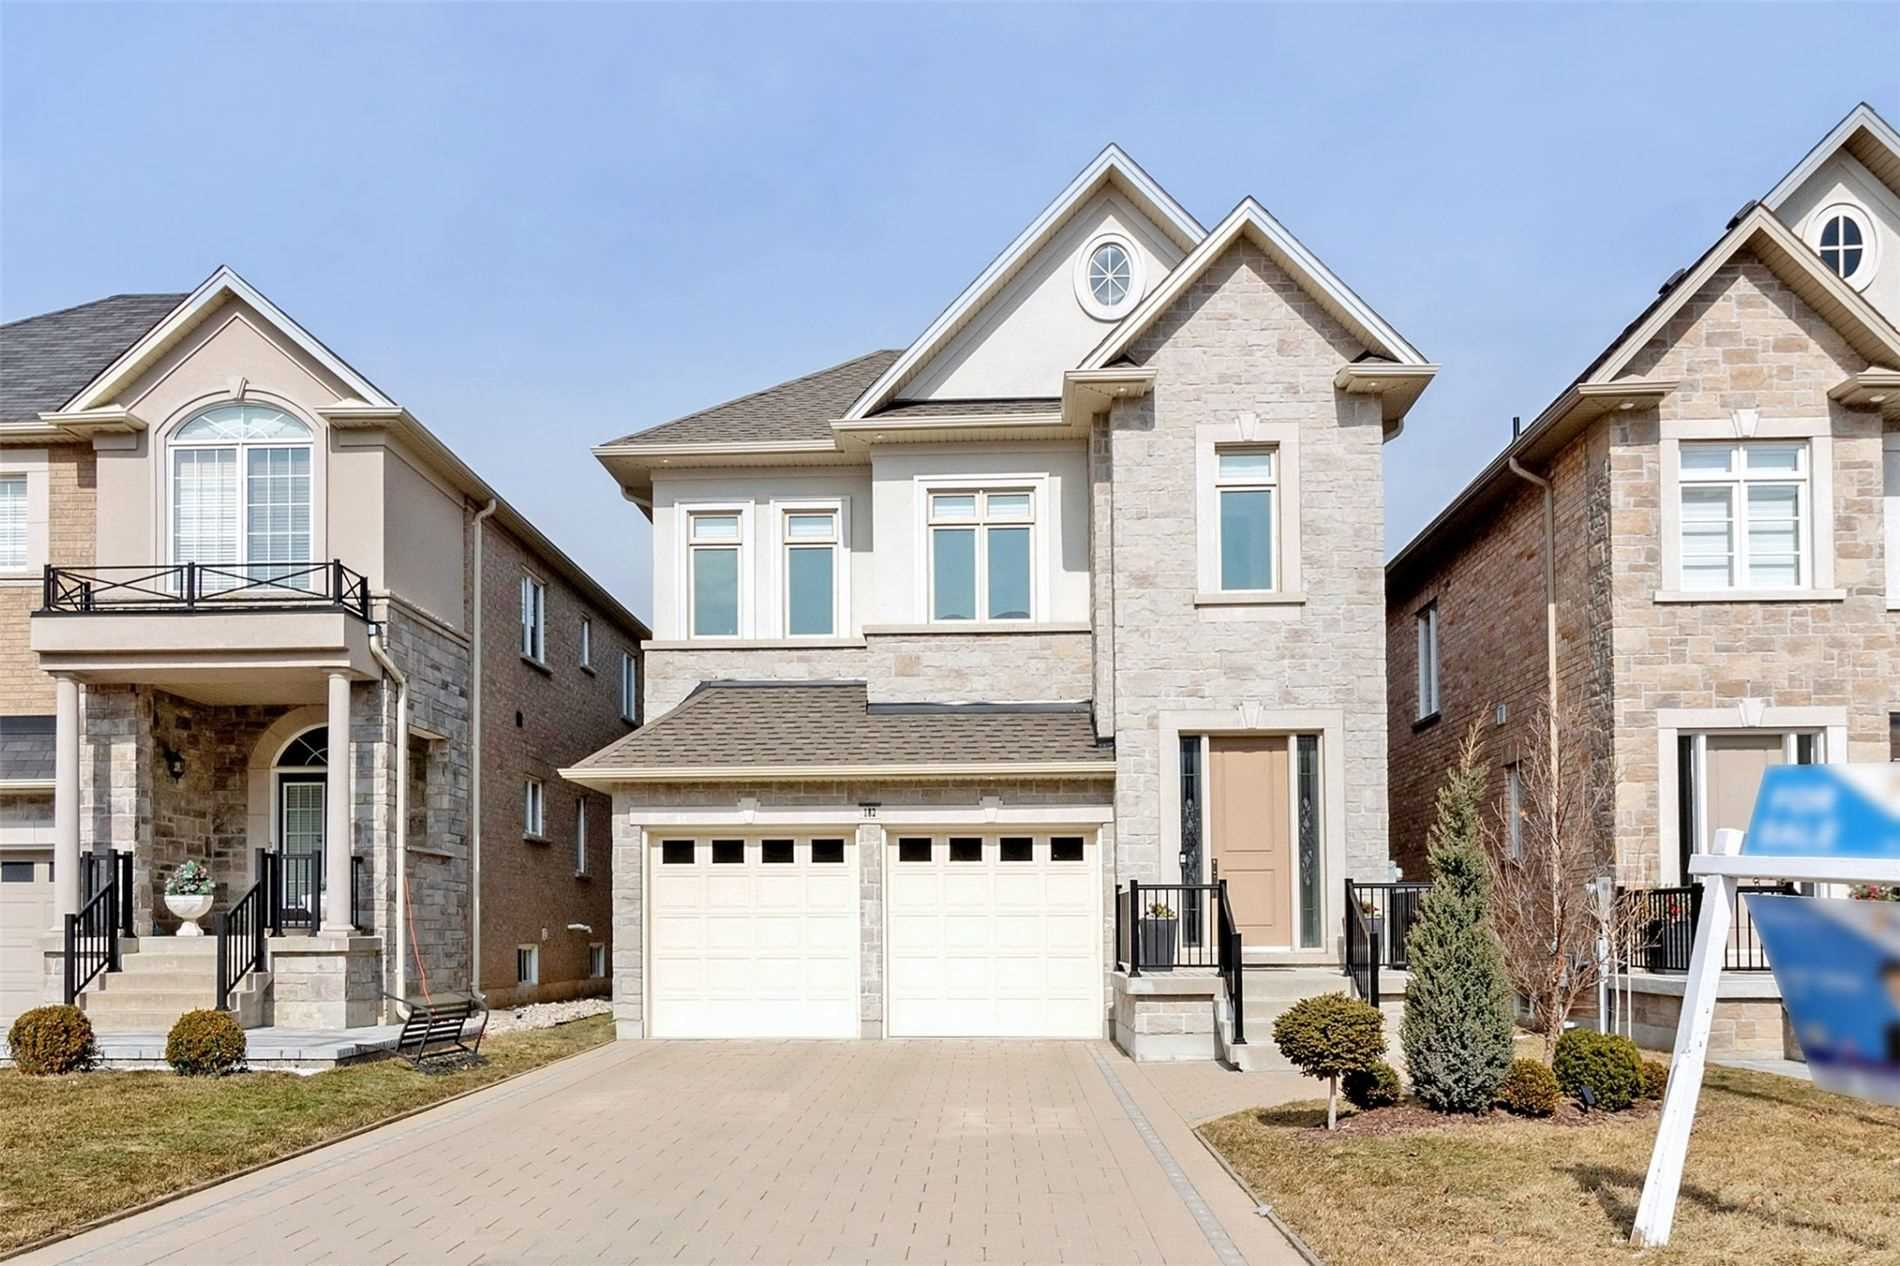 182 Townsgate Dr, Vaughan, Ontario L4J8J5, 4 Bedrooms Bedrooms, 9 Rooms Rooms,5 BathroomsBathrooms,Detached,For Sale,Townsgate,N5146754